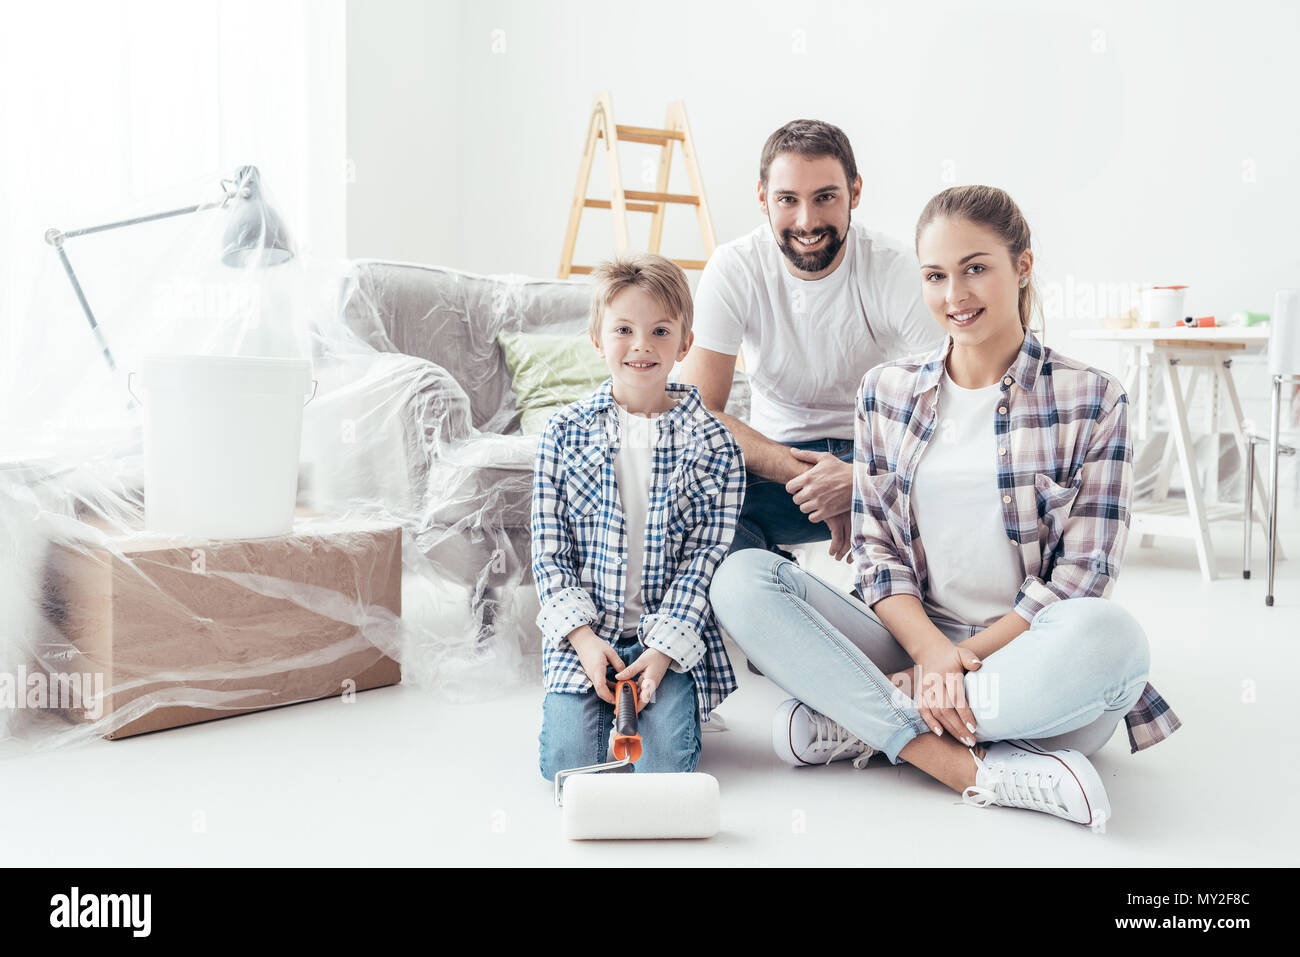 Home makeover, decoration and painting: happy family smiling and posing, the boy is holding a paint roller - Stock Image